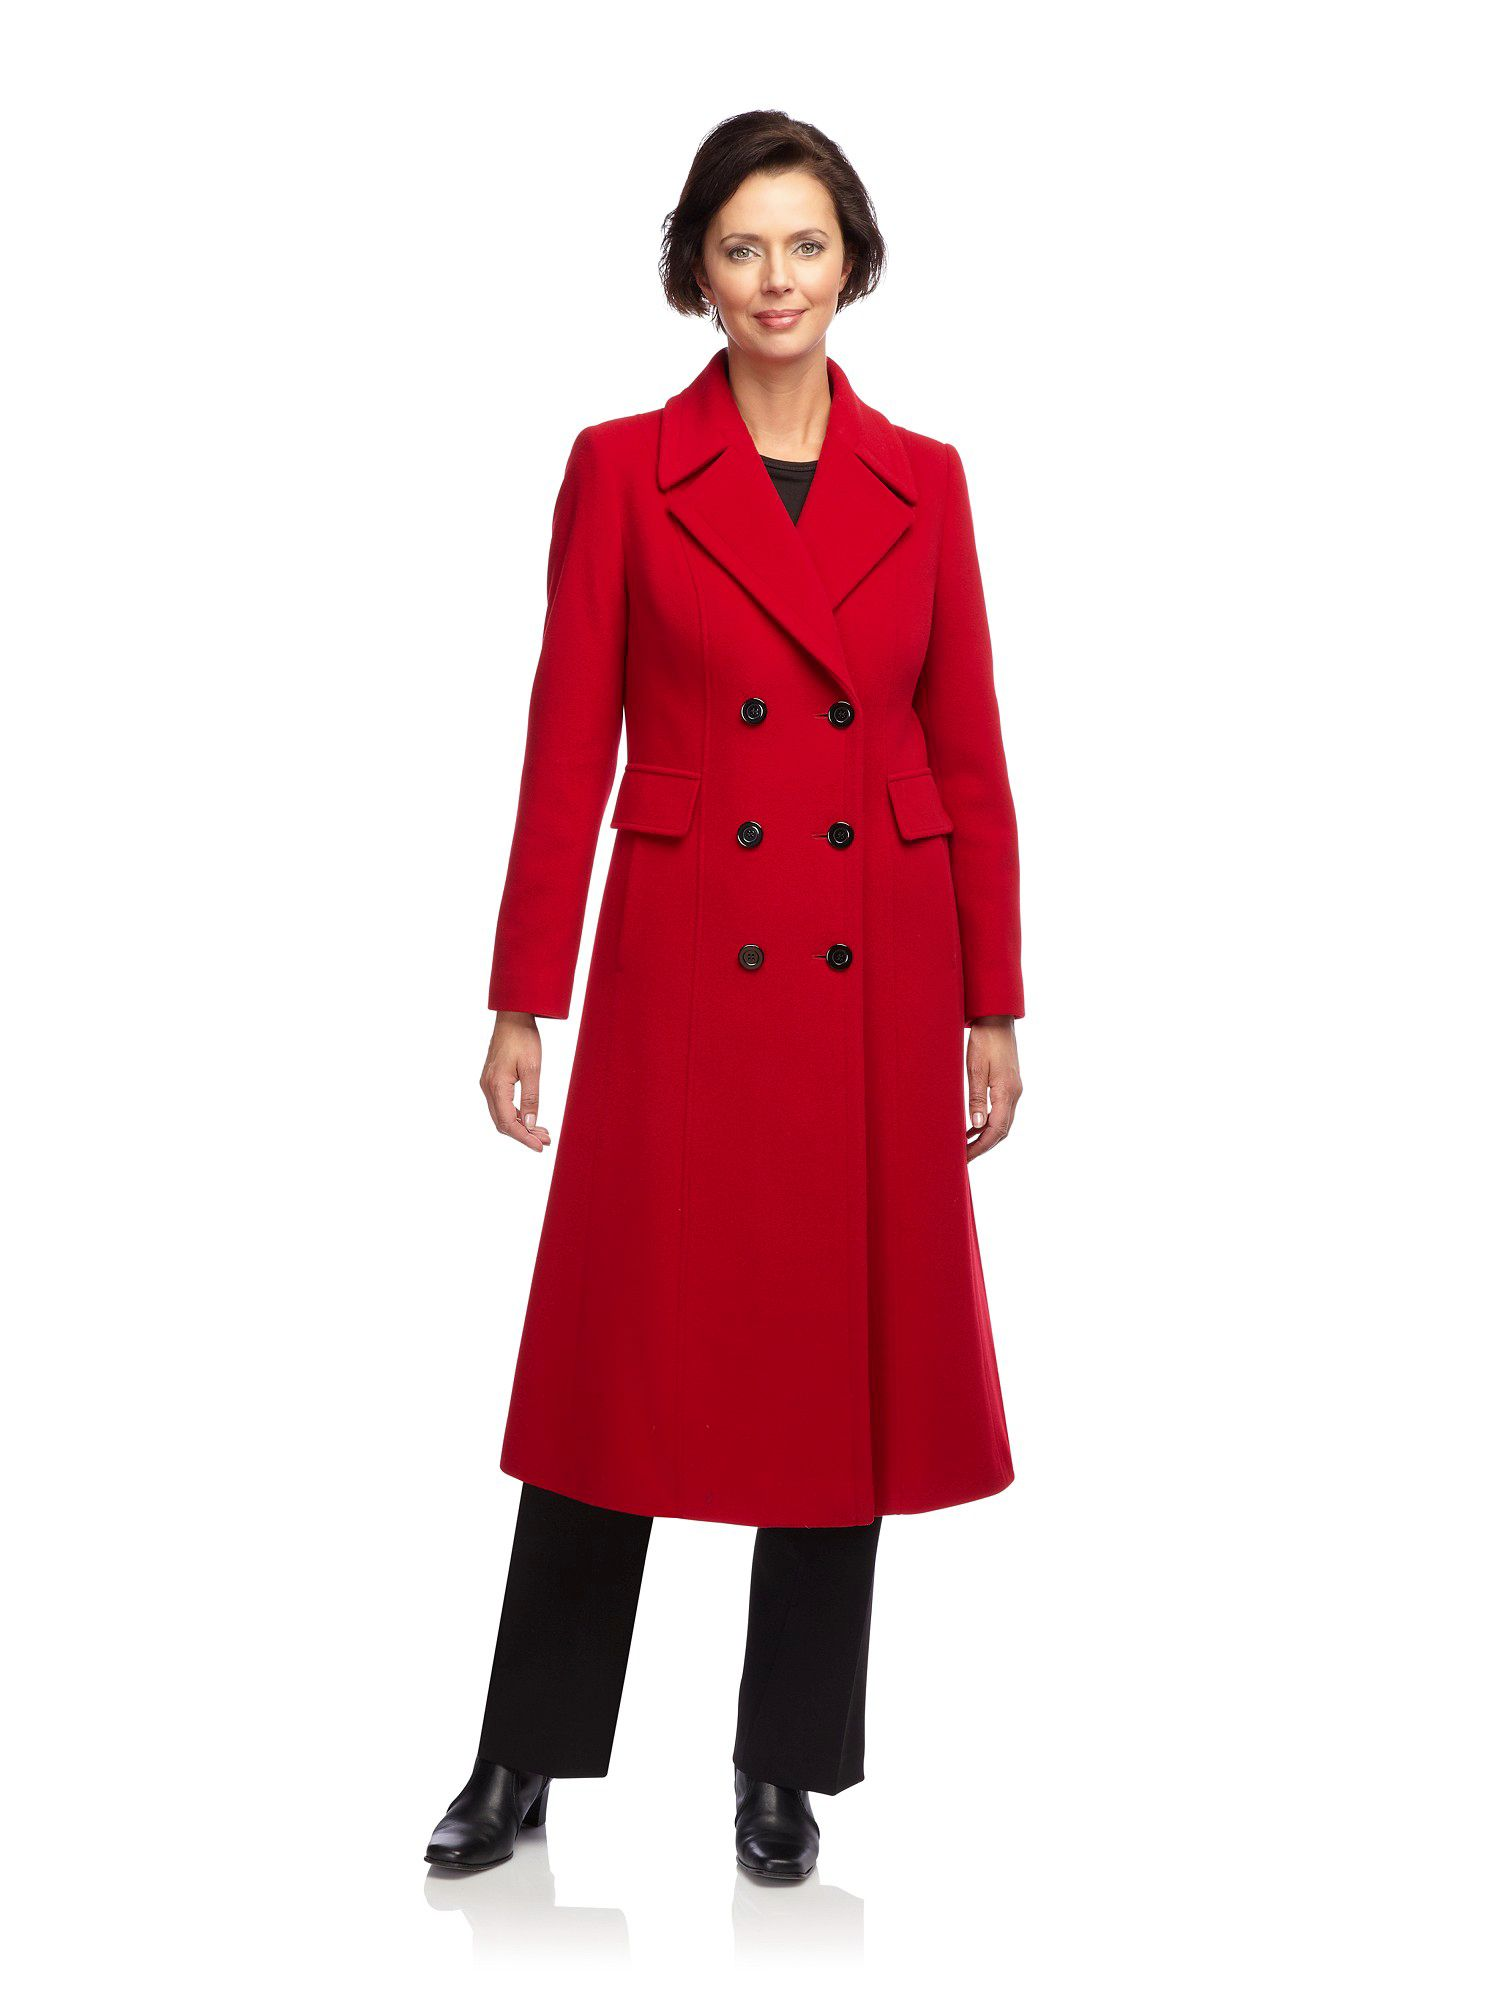 Classic long red coat